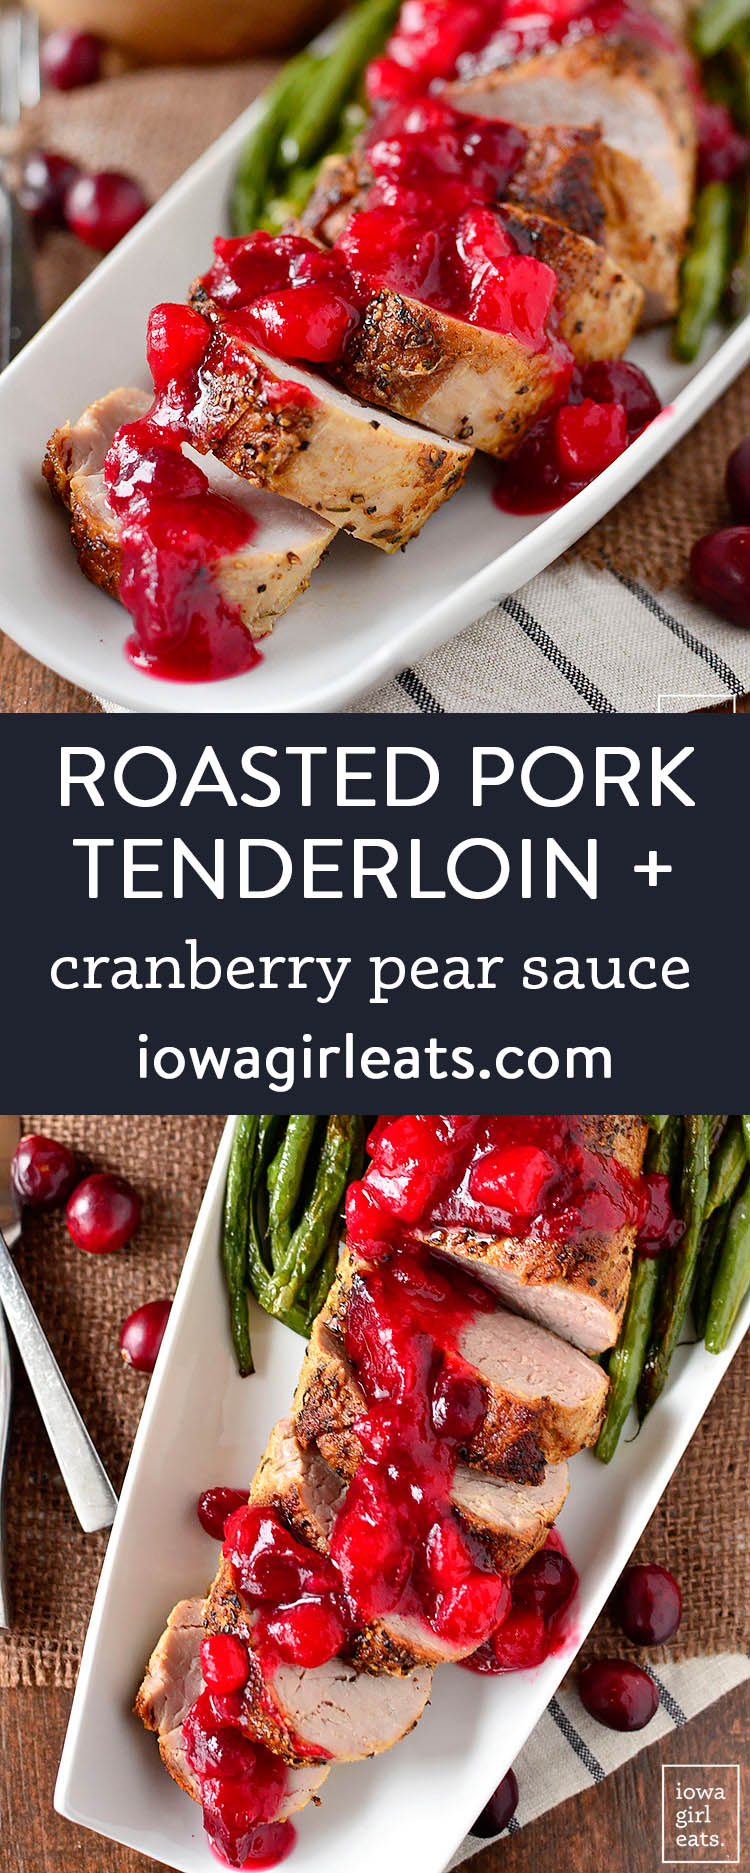 Photo collage of roasted pork tenderloin